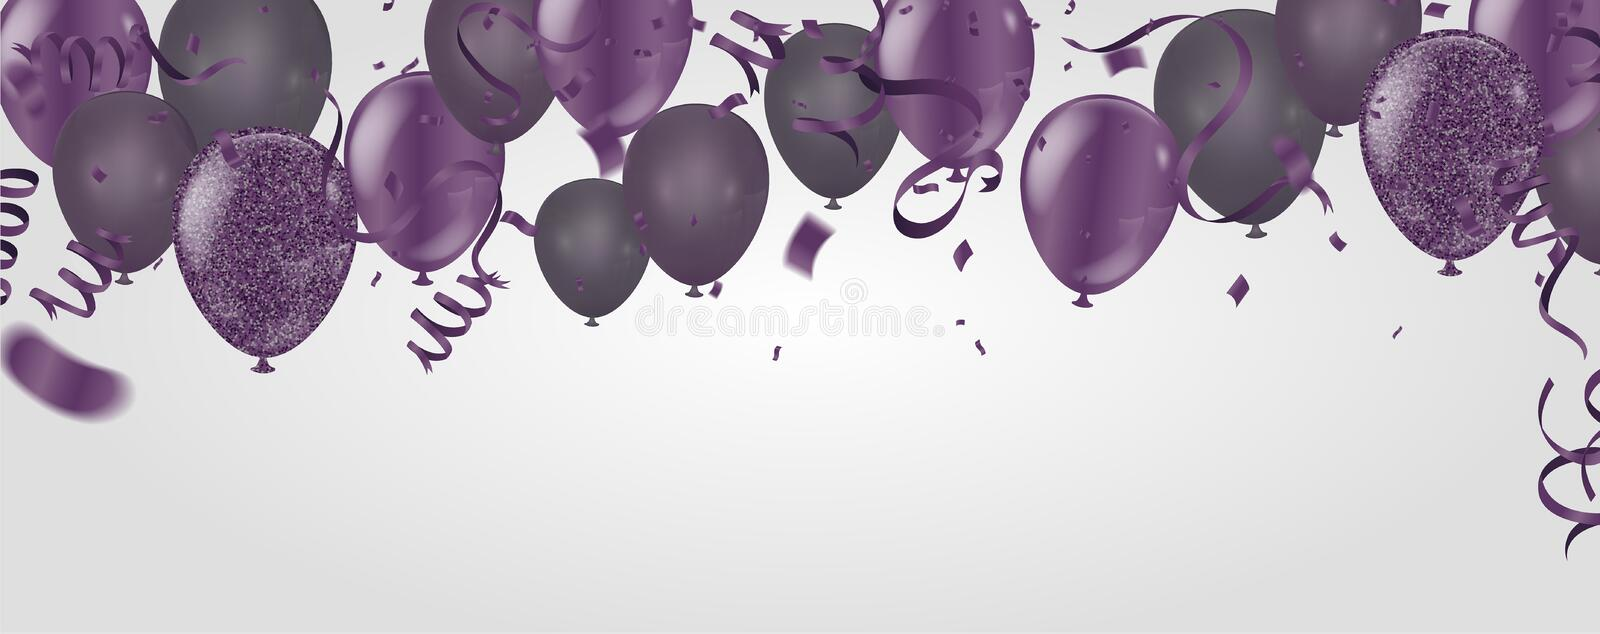 purple transparent with confetti helium balloon isolated in the royalty free illustration